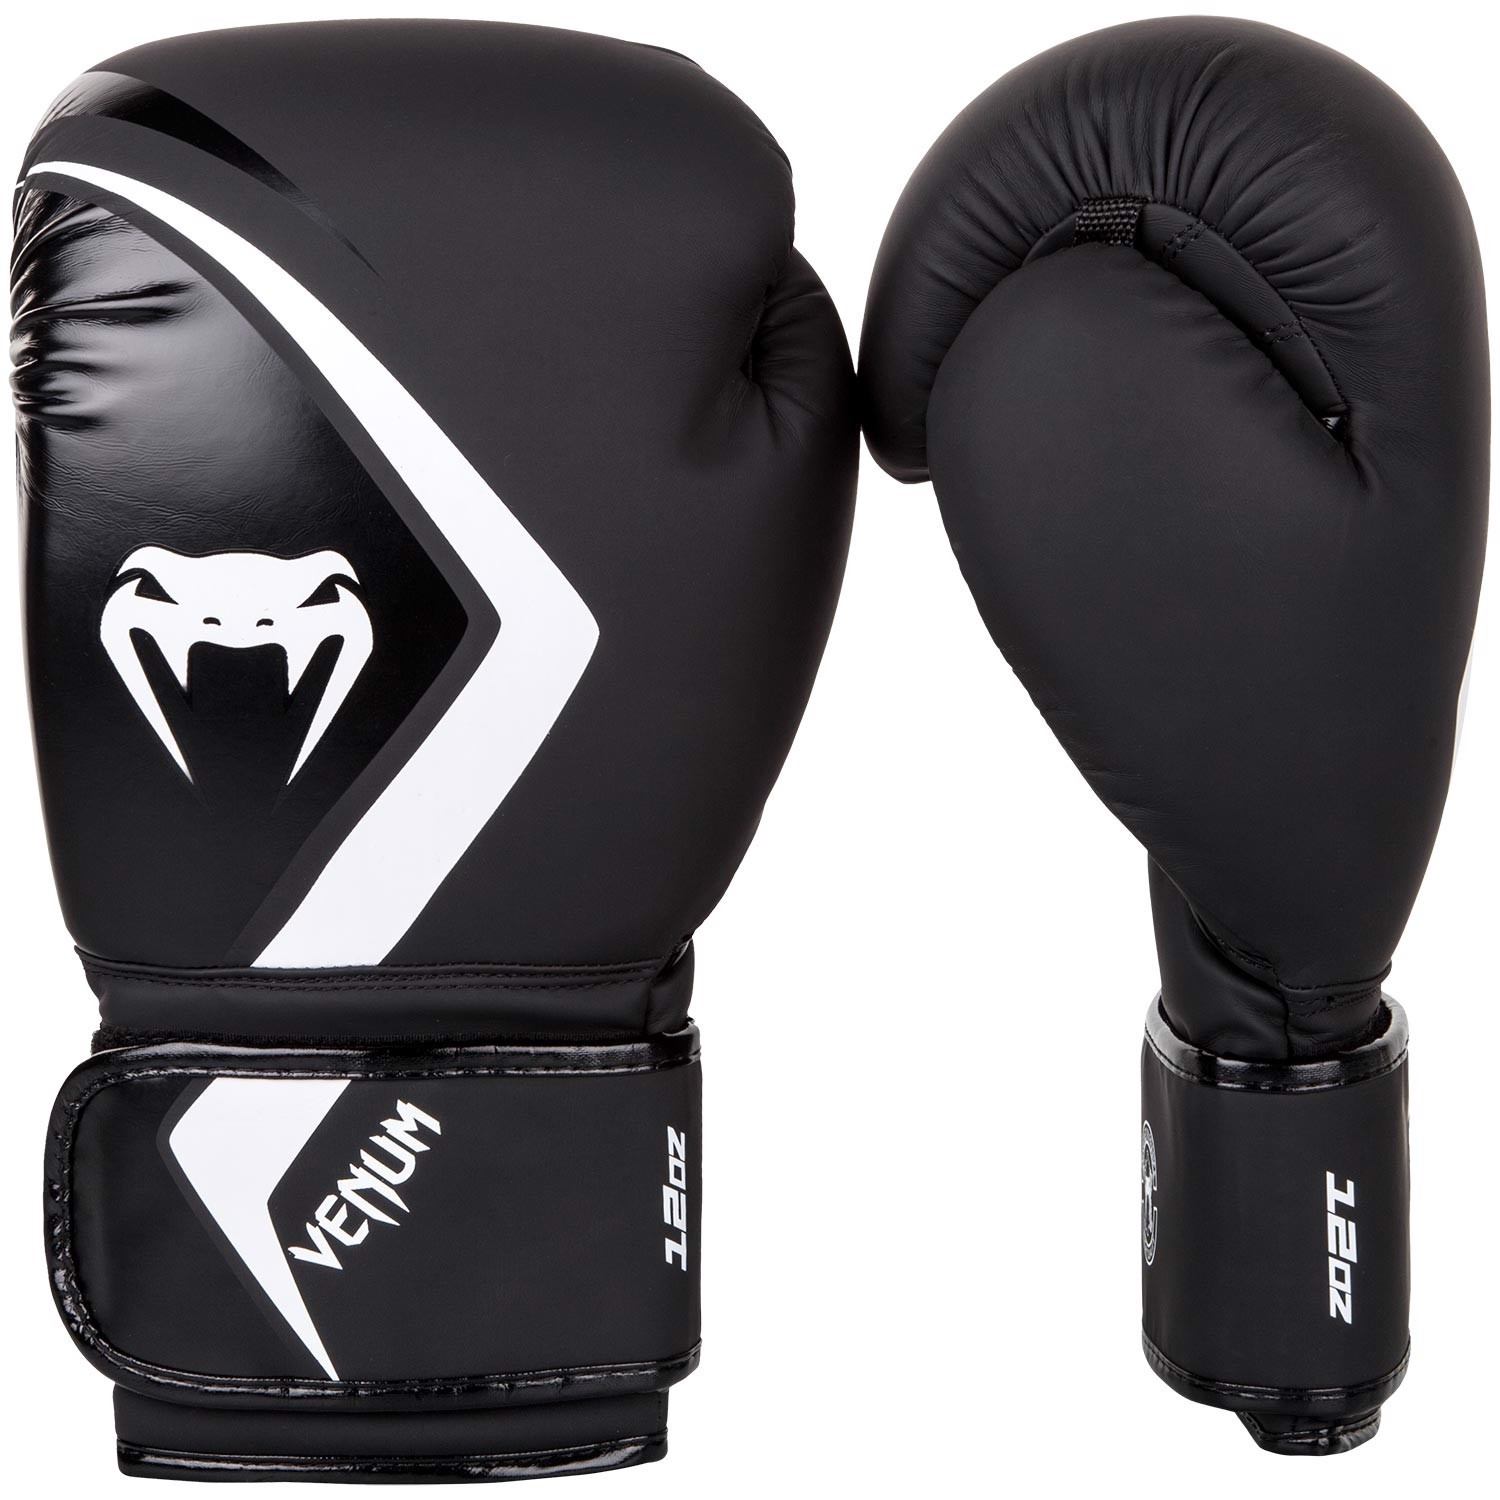 Găng Tay Venum Boxing Gloves Contender 2.0 - Black/Grey-White